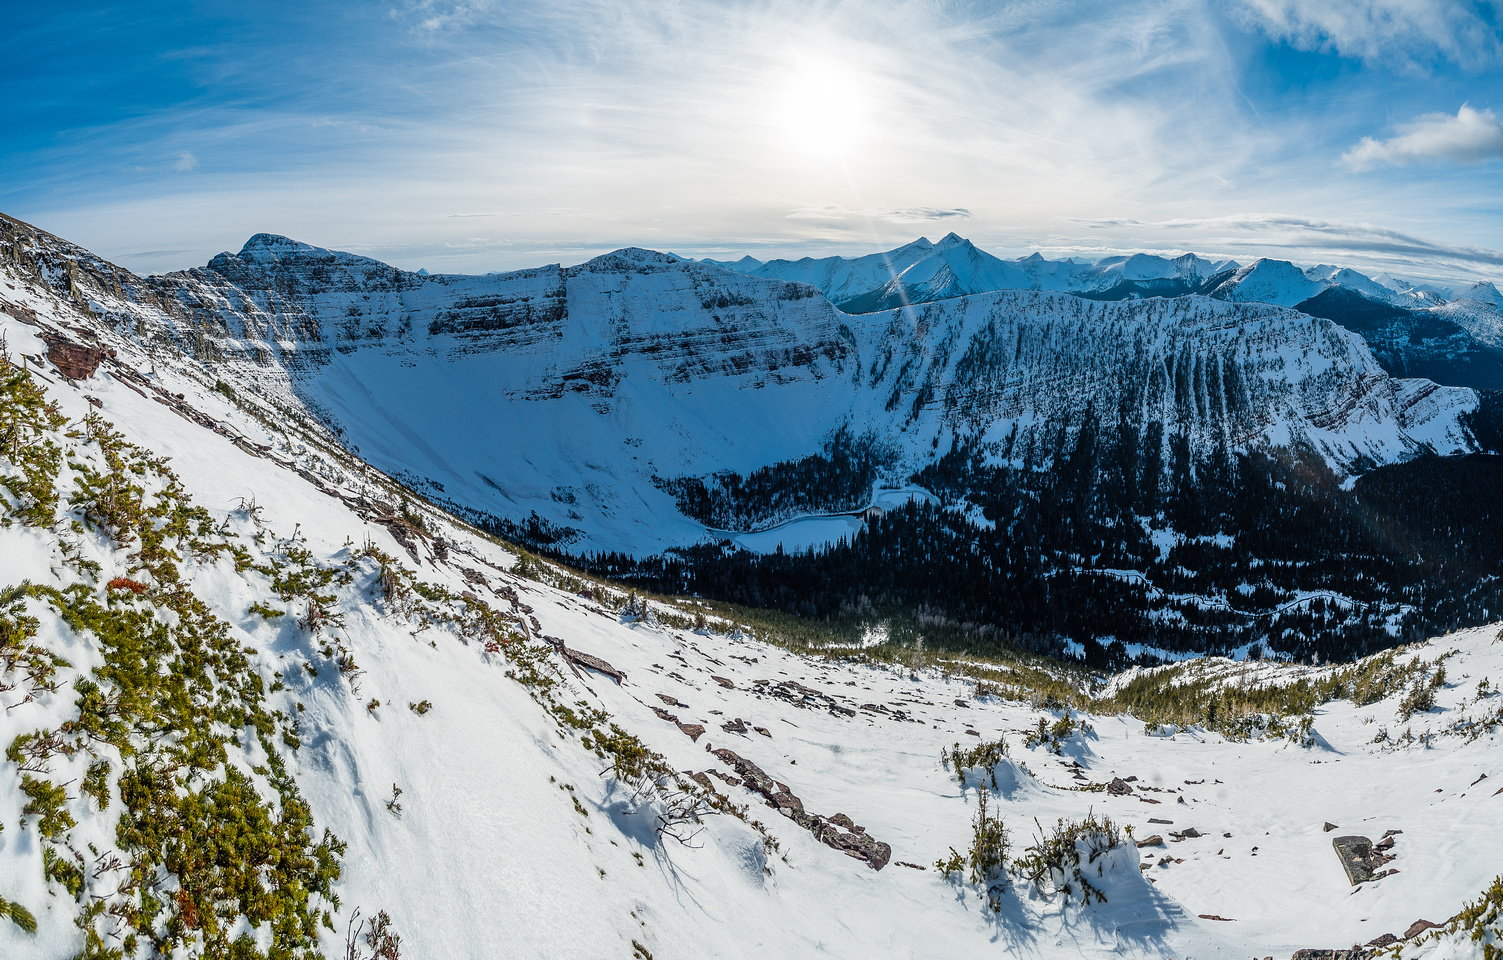 A nice view of the Ruby Lake bowl, lots of snow!